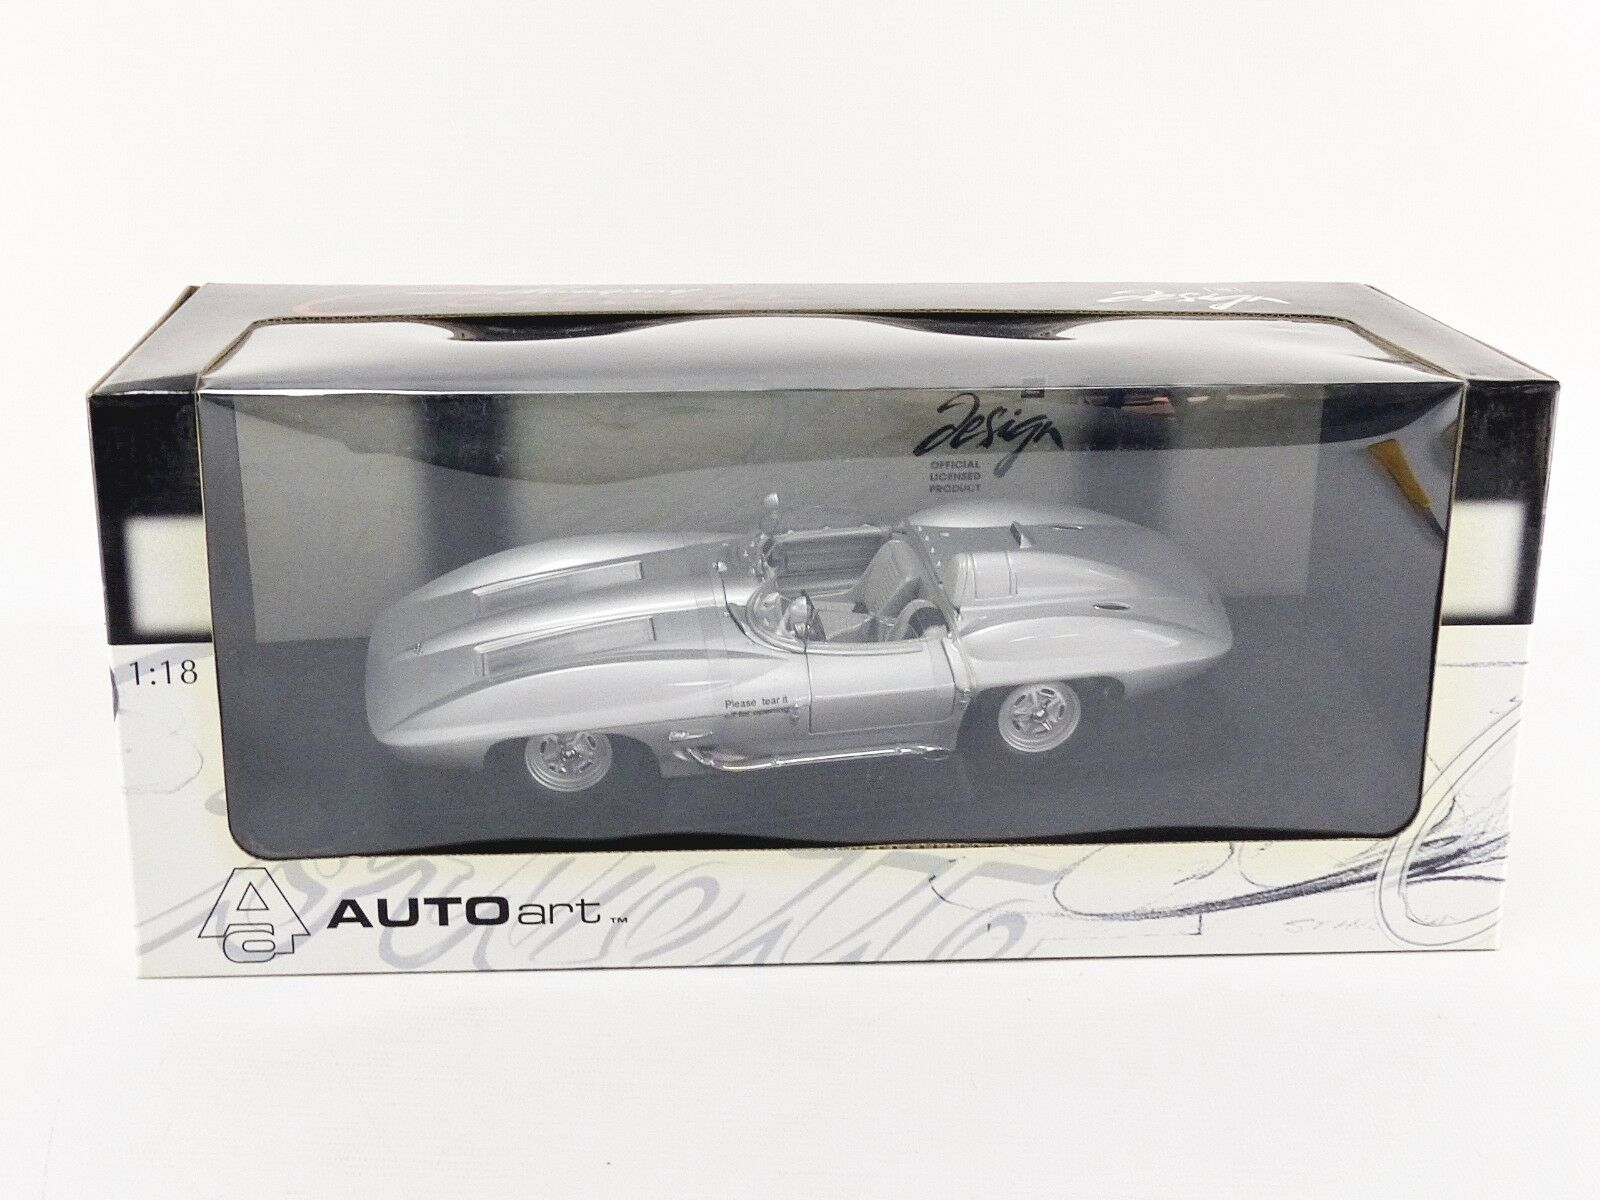 AUTOART 1/18 - CHEVROLET CORVETTE CONCEPT CAR 1959 - 71000